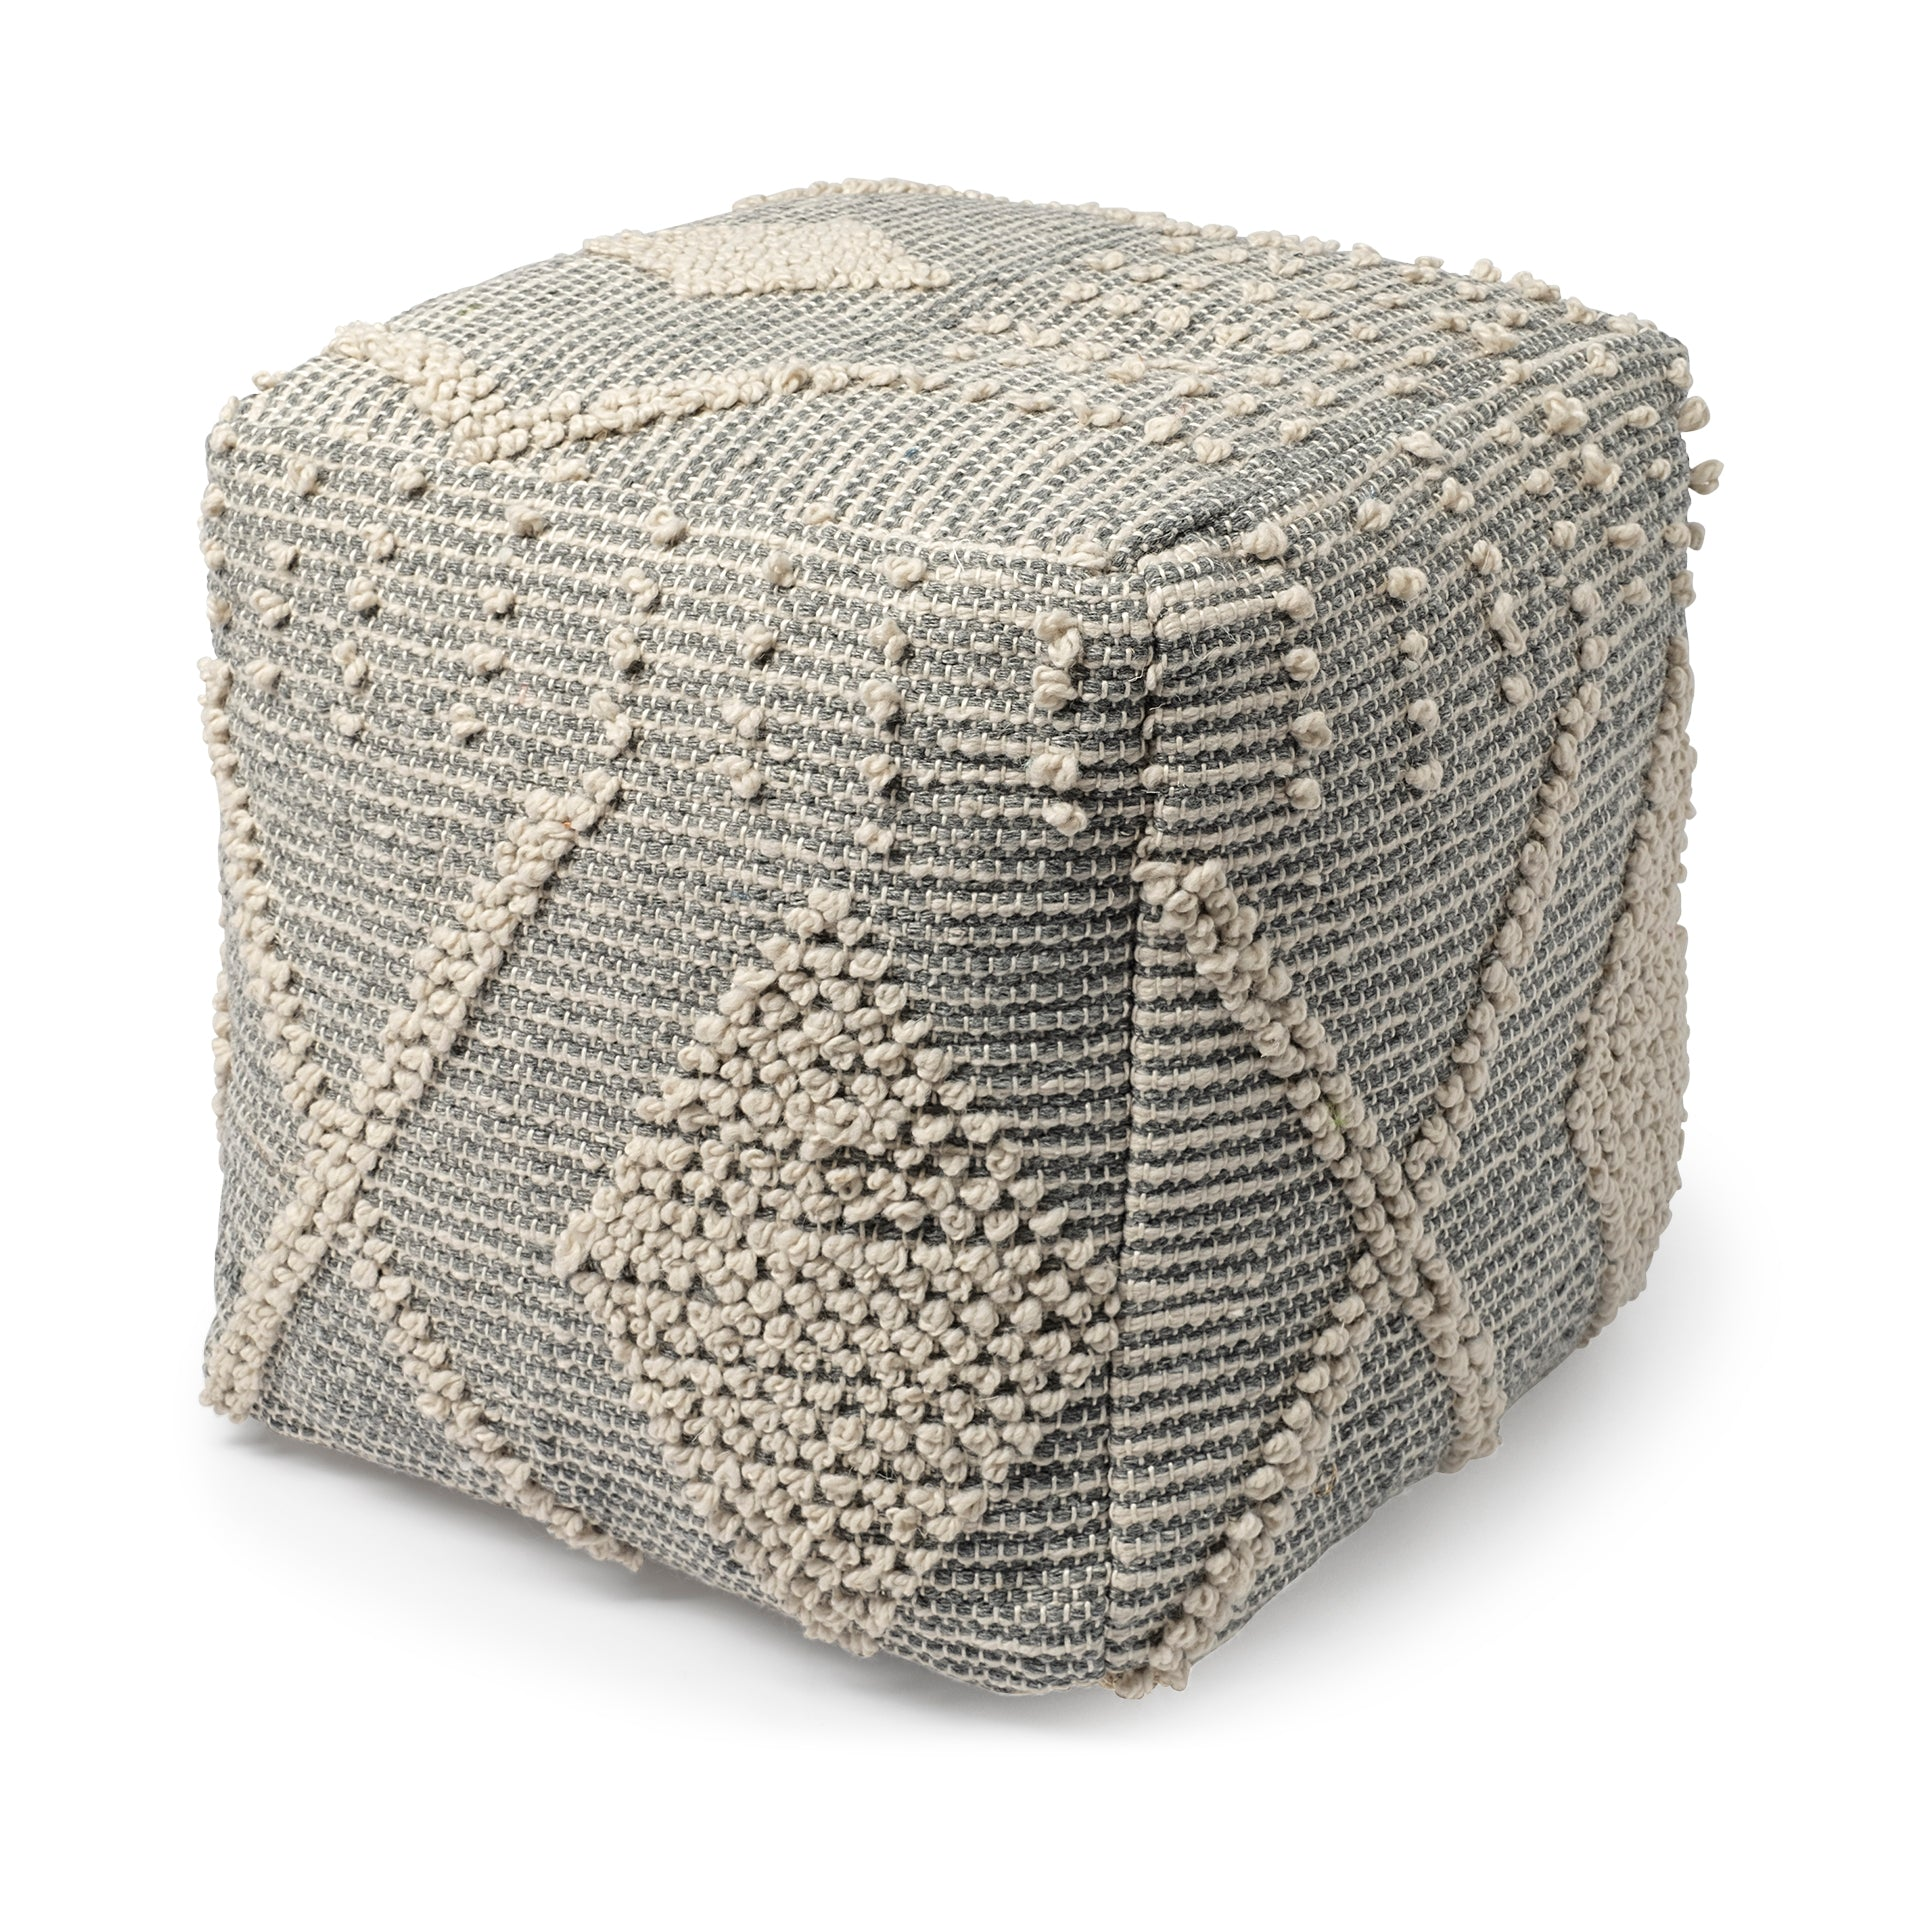 Brinket Square Pouf